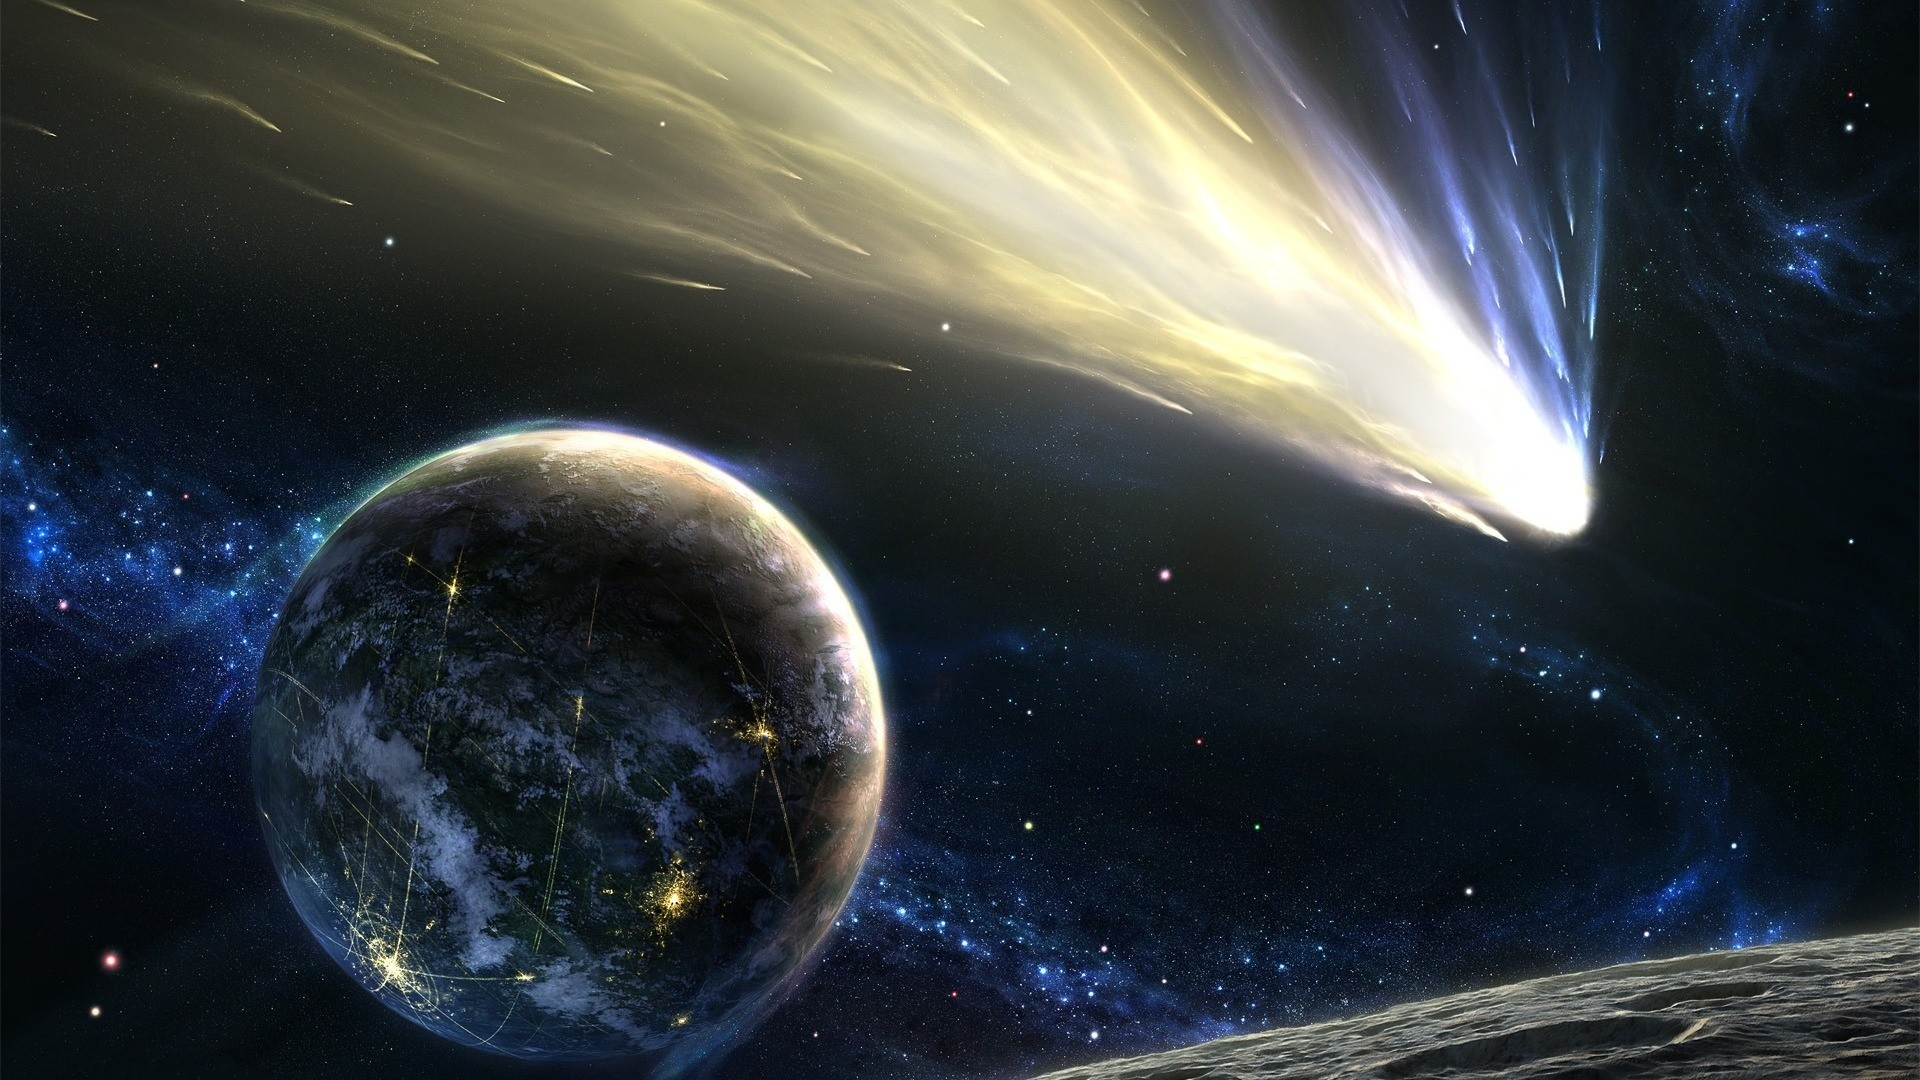 Landscapes outer space planets HD Wallpaper